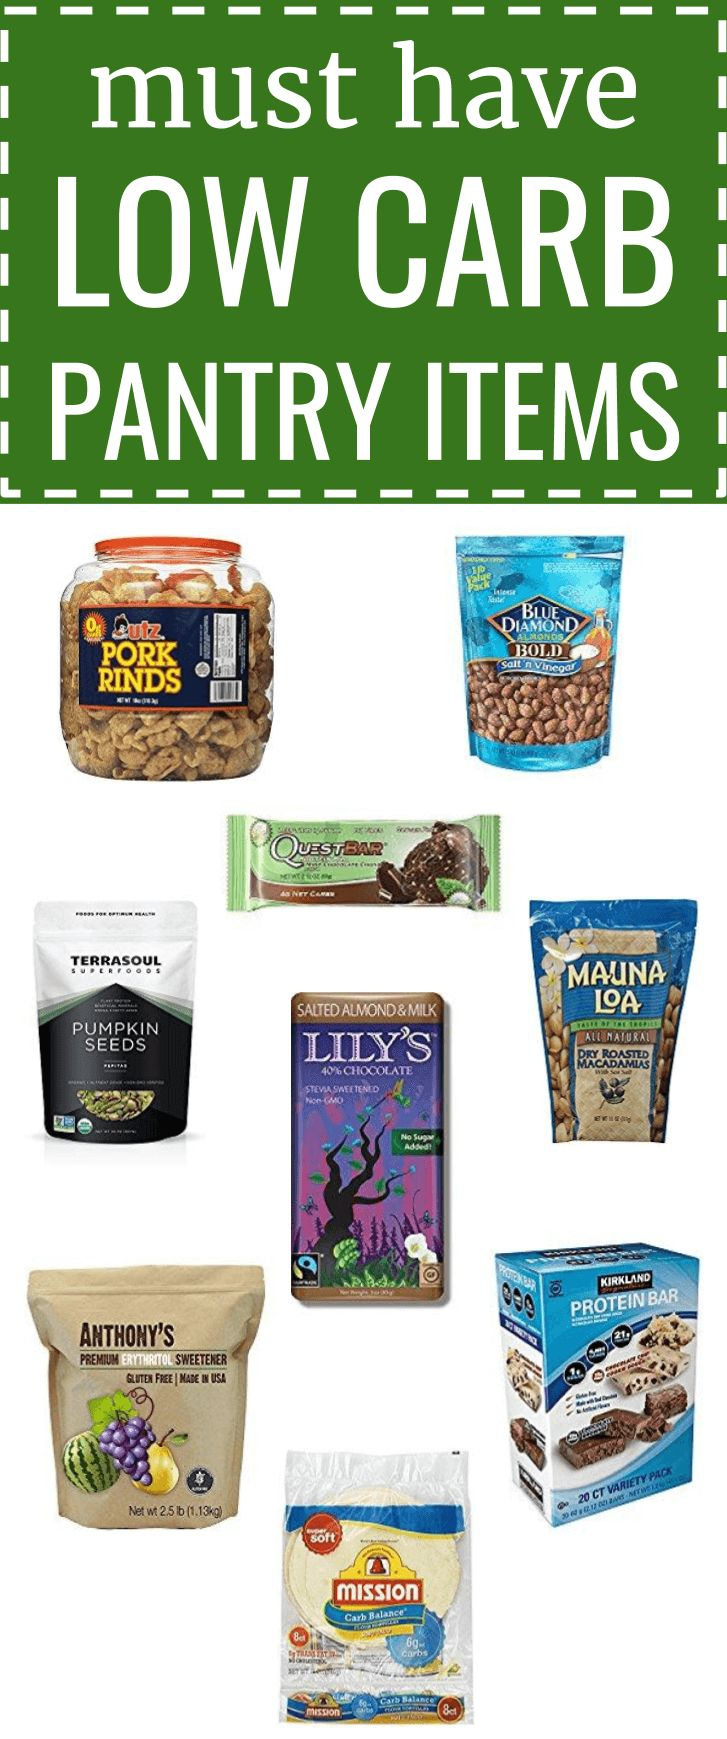 Low carb pantry stuffers, items, and products for a healthy keto lifestyle. stap...